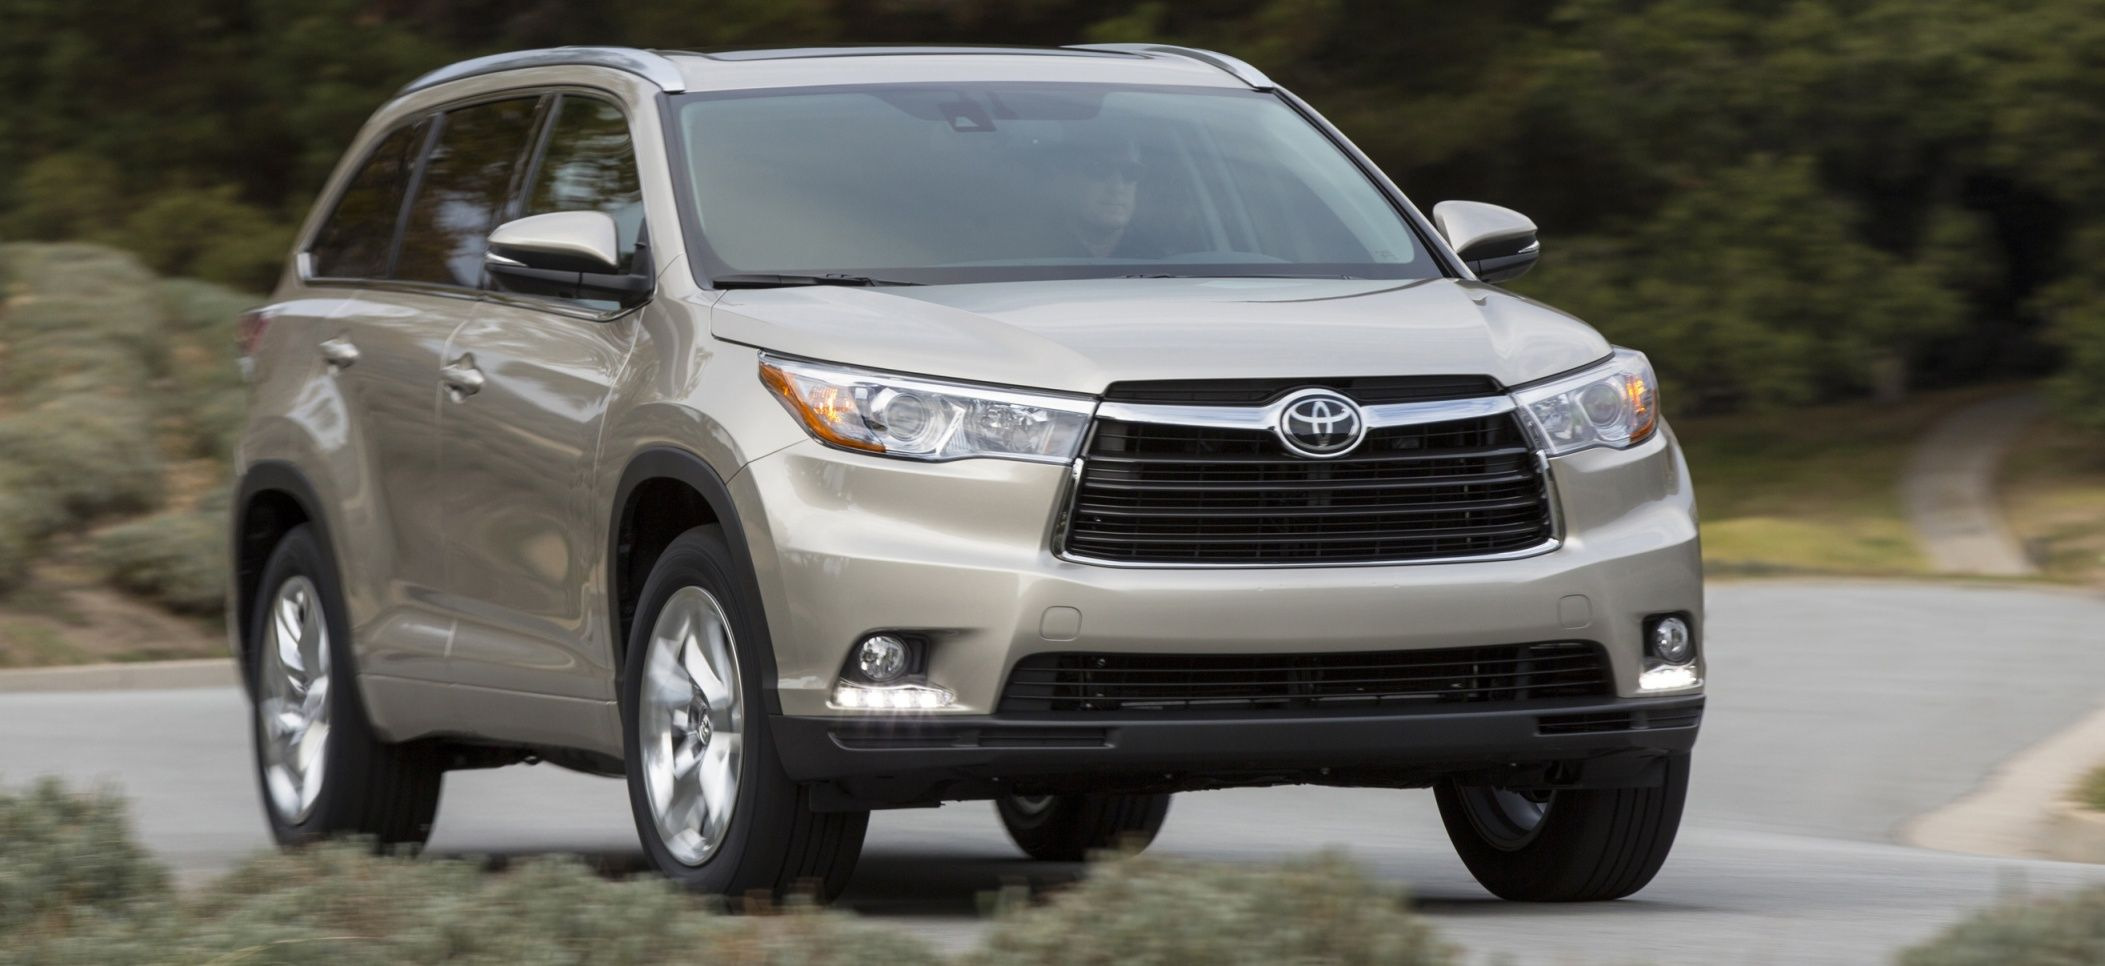 2017 toyota highlander side view silver color cool cars pinterest toyota and cars